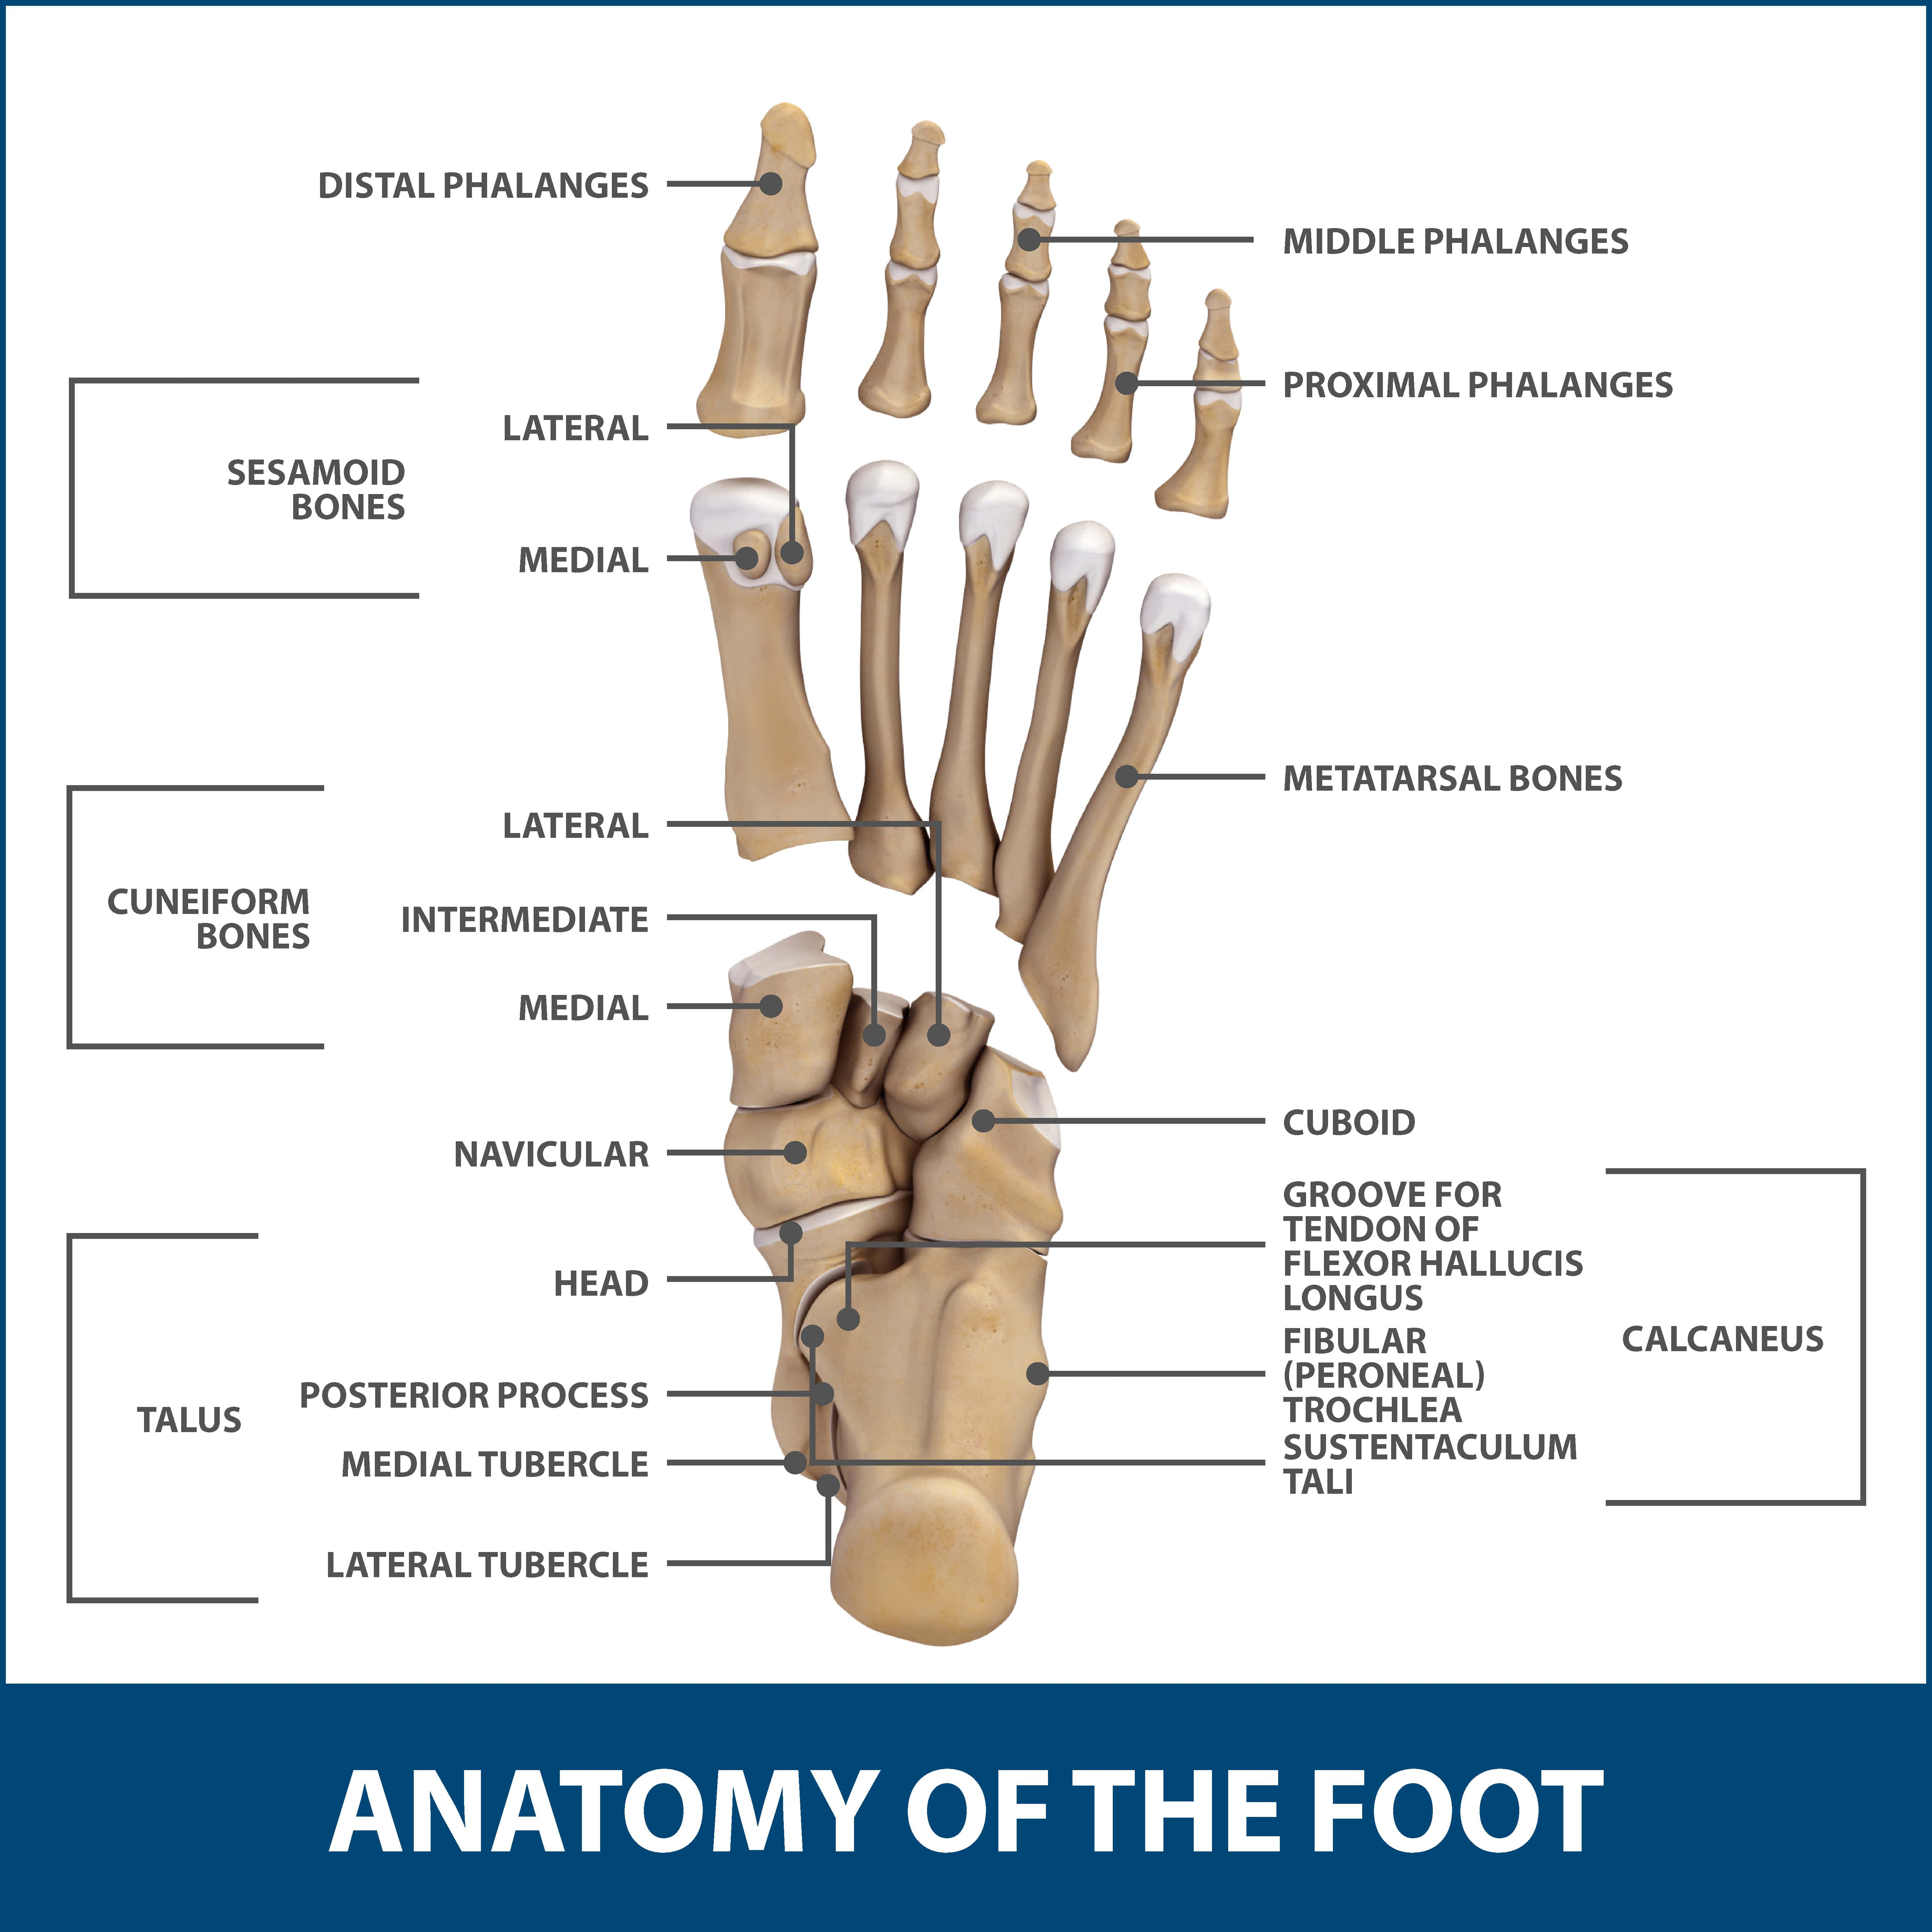 Mallet, Hammer, & Claw Toes | Florida Orthopaedic Institute